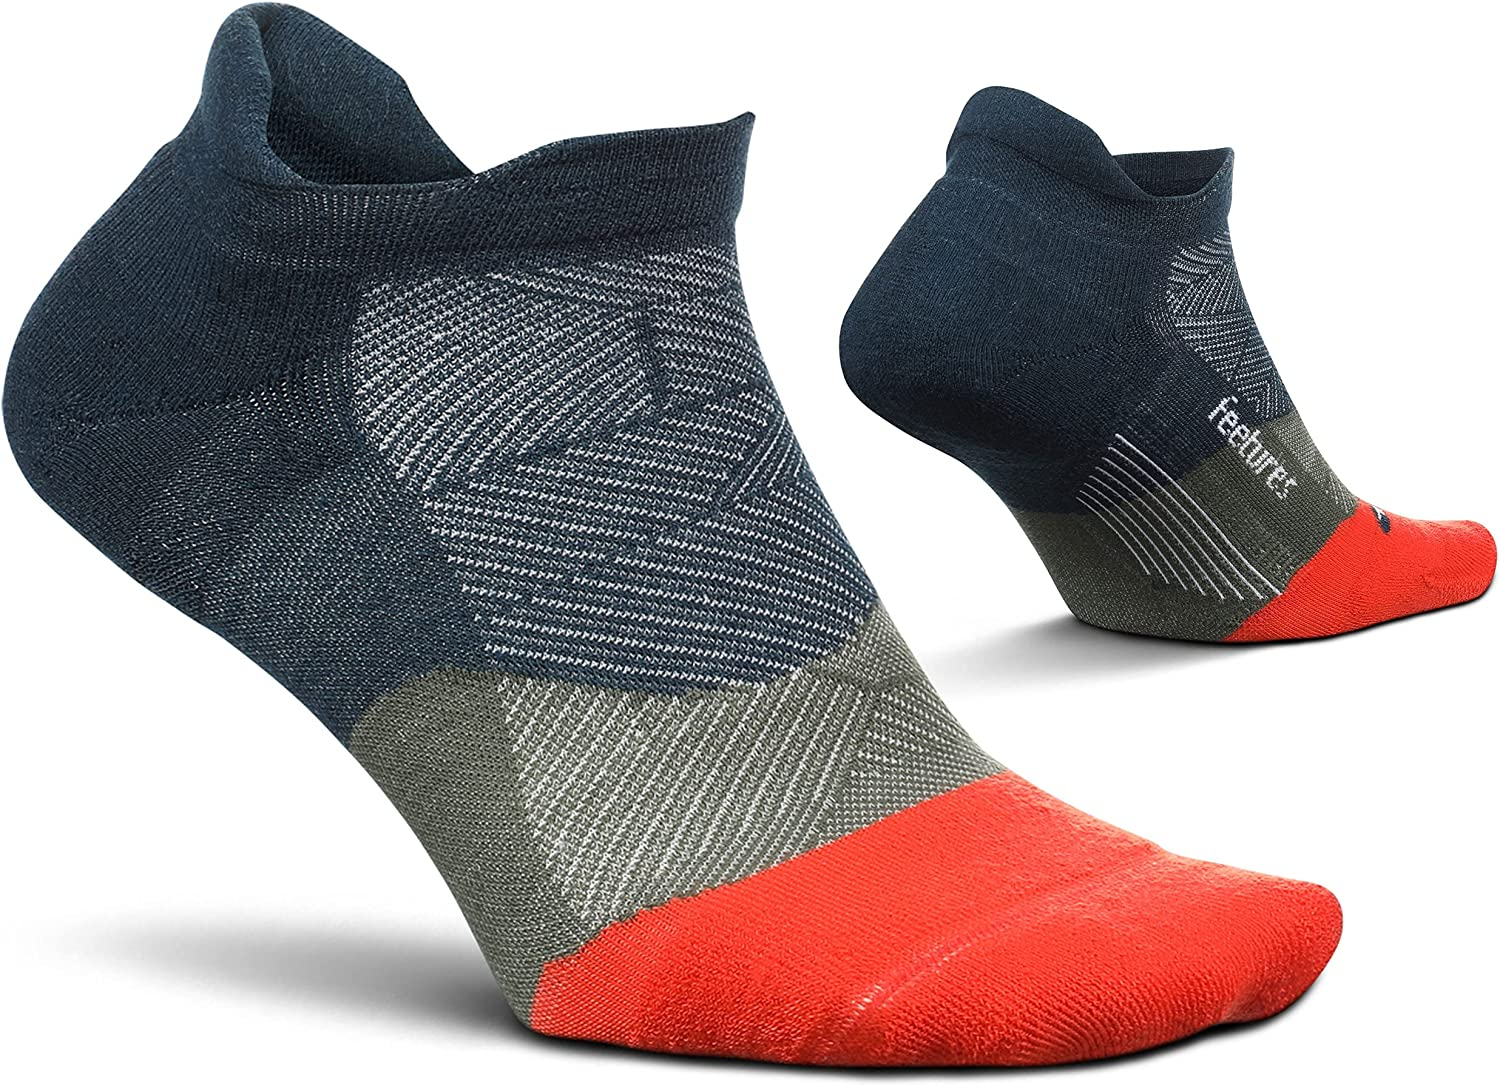 Feetures Elite Max Cushion No Baltimore Mall Show M Some reservation Tab for Running Socks Wave-